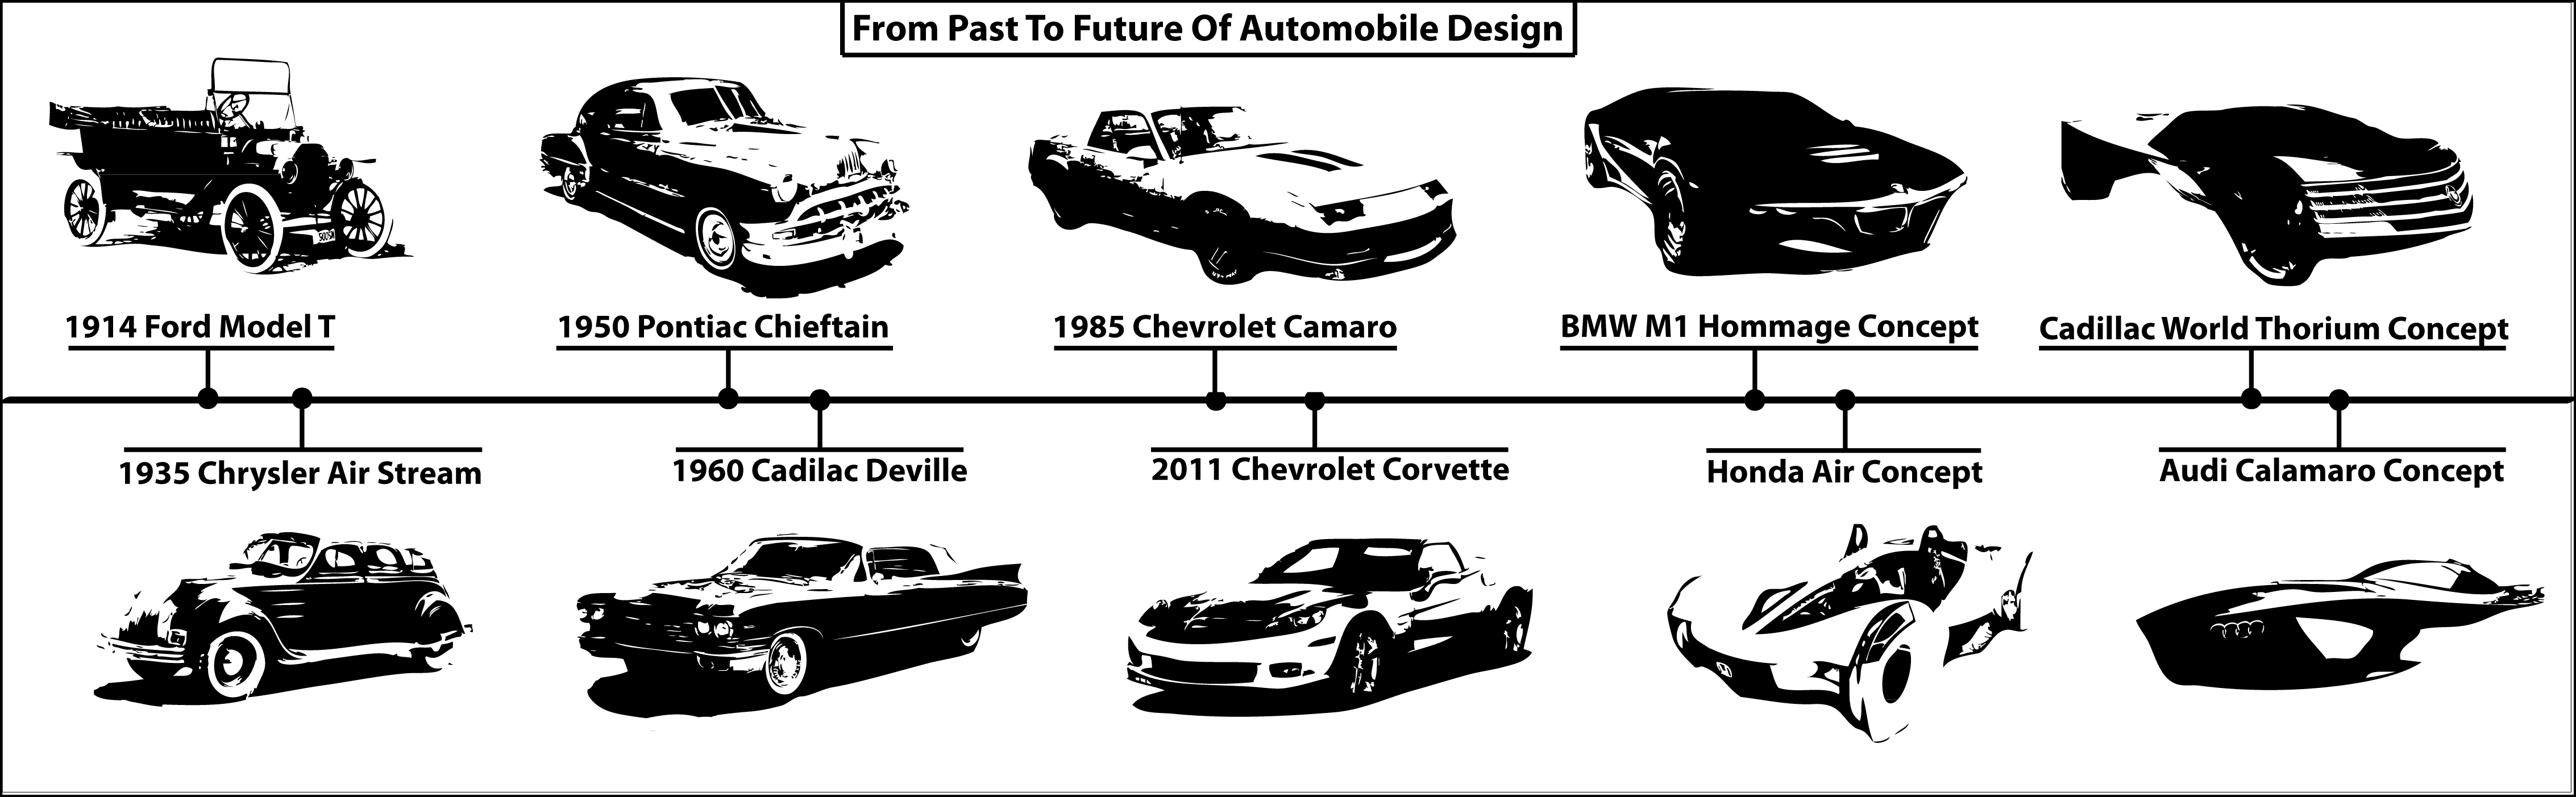 From Past To Future Of Automobile Design